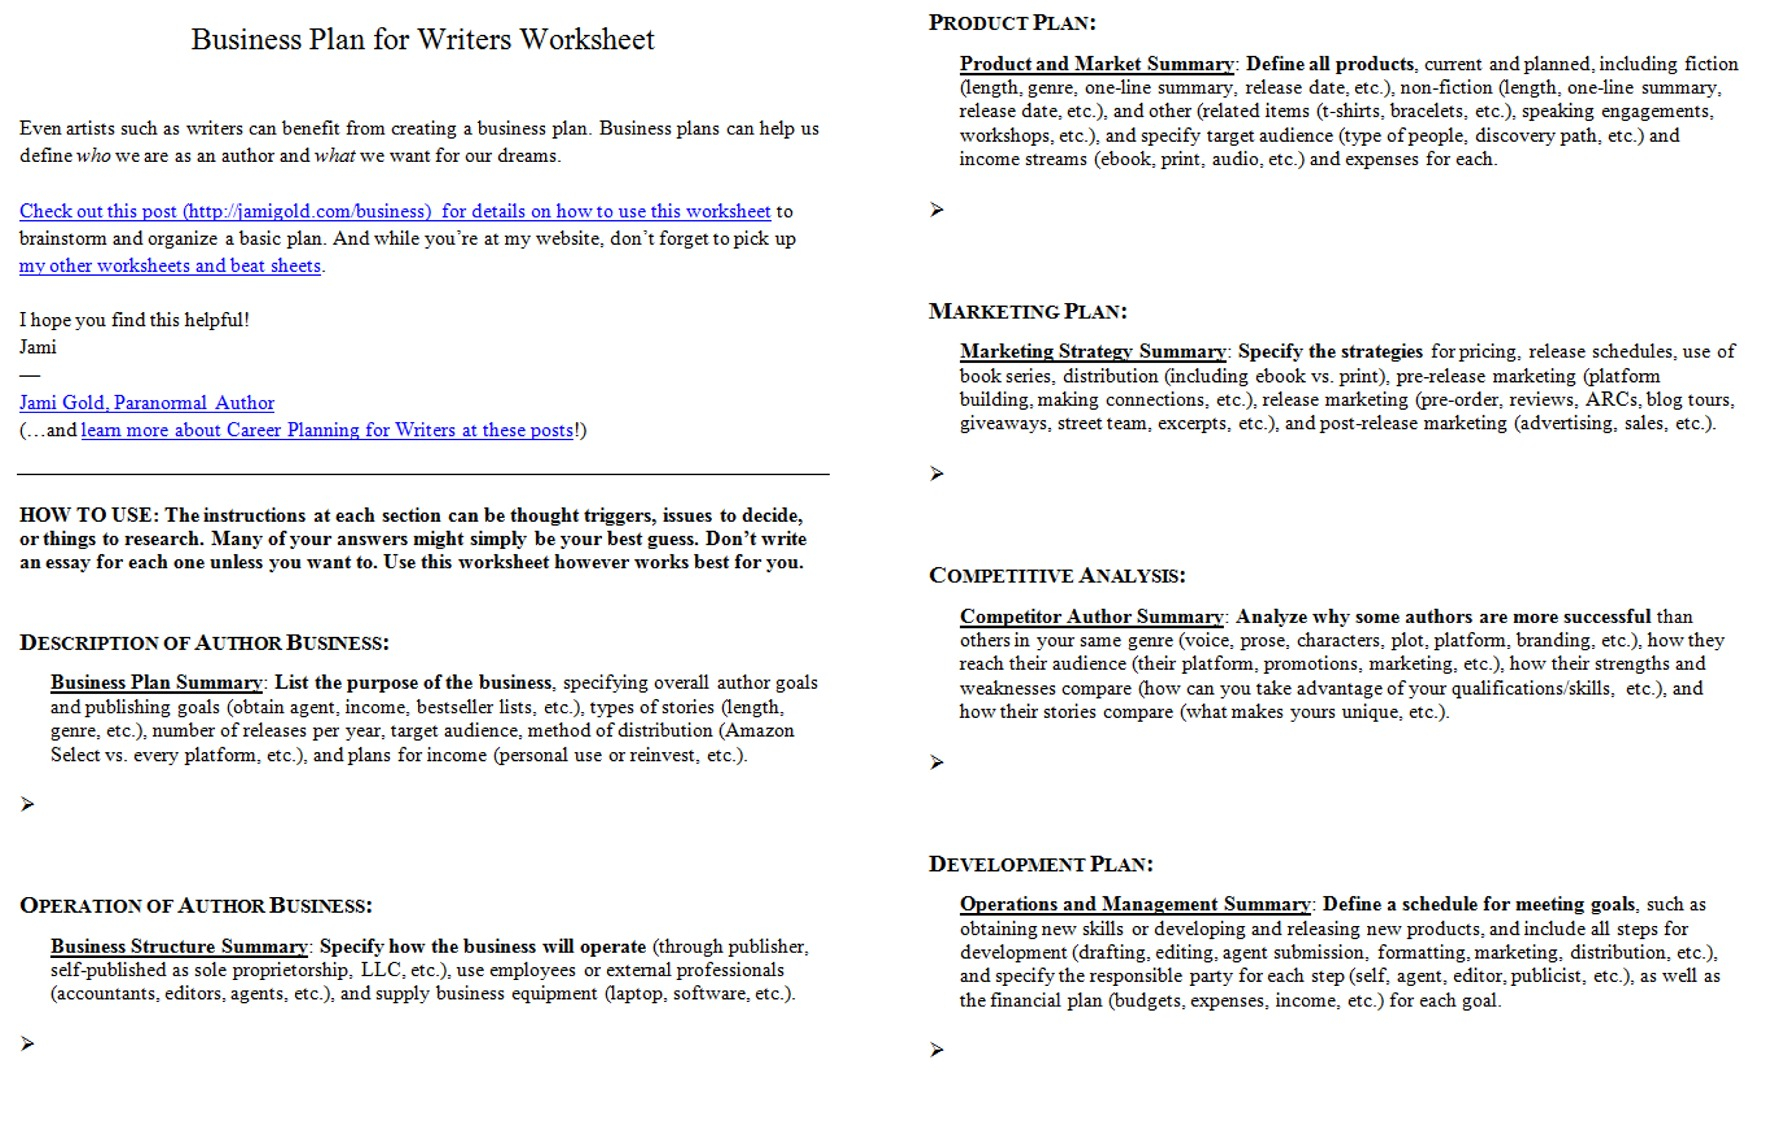 Proatmealus  Inspiring Worksheets For Writers  Jami Gold Paranormal Author With Licious Screen Shot Of Both Pages Of The Business Plan For Writers Worksheet With Breathtaking Bar Graph Worksheets Grade  Also Class  English Worksheets In Addition Antonyms Printable Worksheets And Free D Nealian Cursive Worksheets As Well As Compare And Contrast Comprehension Worksheets Additionally Find The Area Worksheets From Jamigoldcom With Proatmealus  Licious Worksheets For Writers  Jami Gold Paranormal Author With Breathtaking Screen Shot Of Both Pages Of The Business Plan For Writers Worksheet And Inspiring Bar Graph Worksheets Grade  Also Class  English Worksheets In Addition Antonyms Printable Worksheets From Jamigoldcom